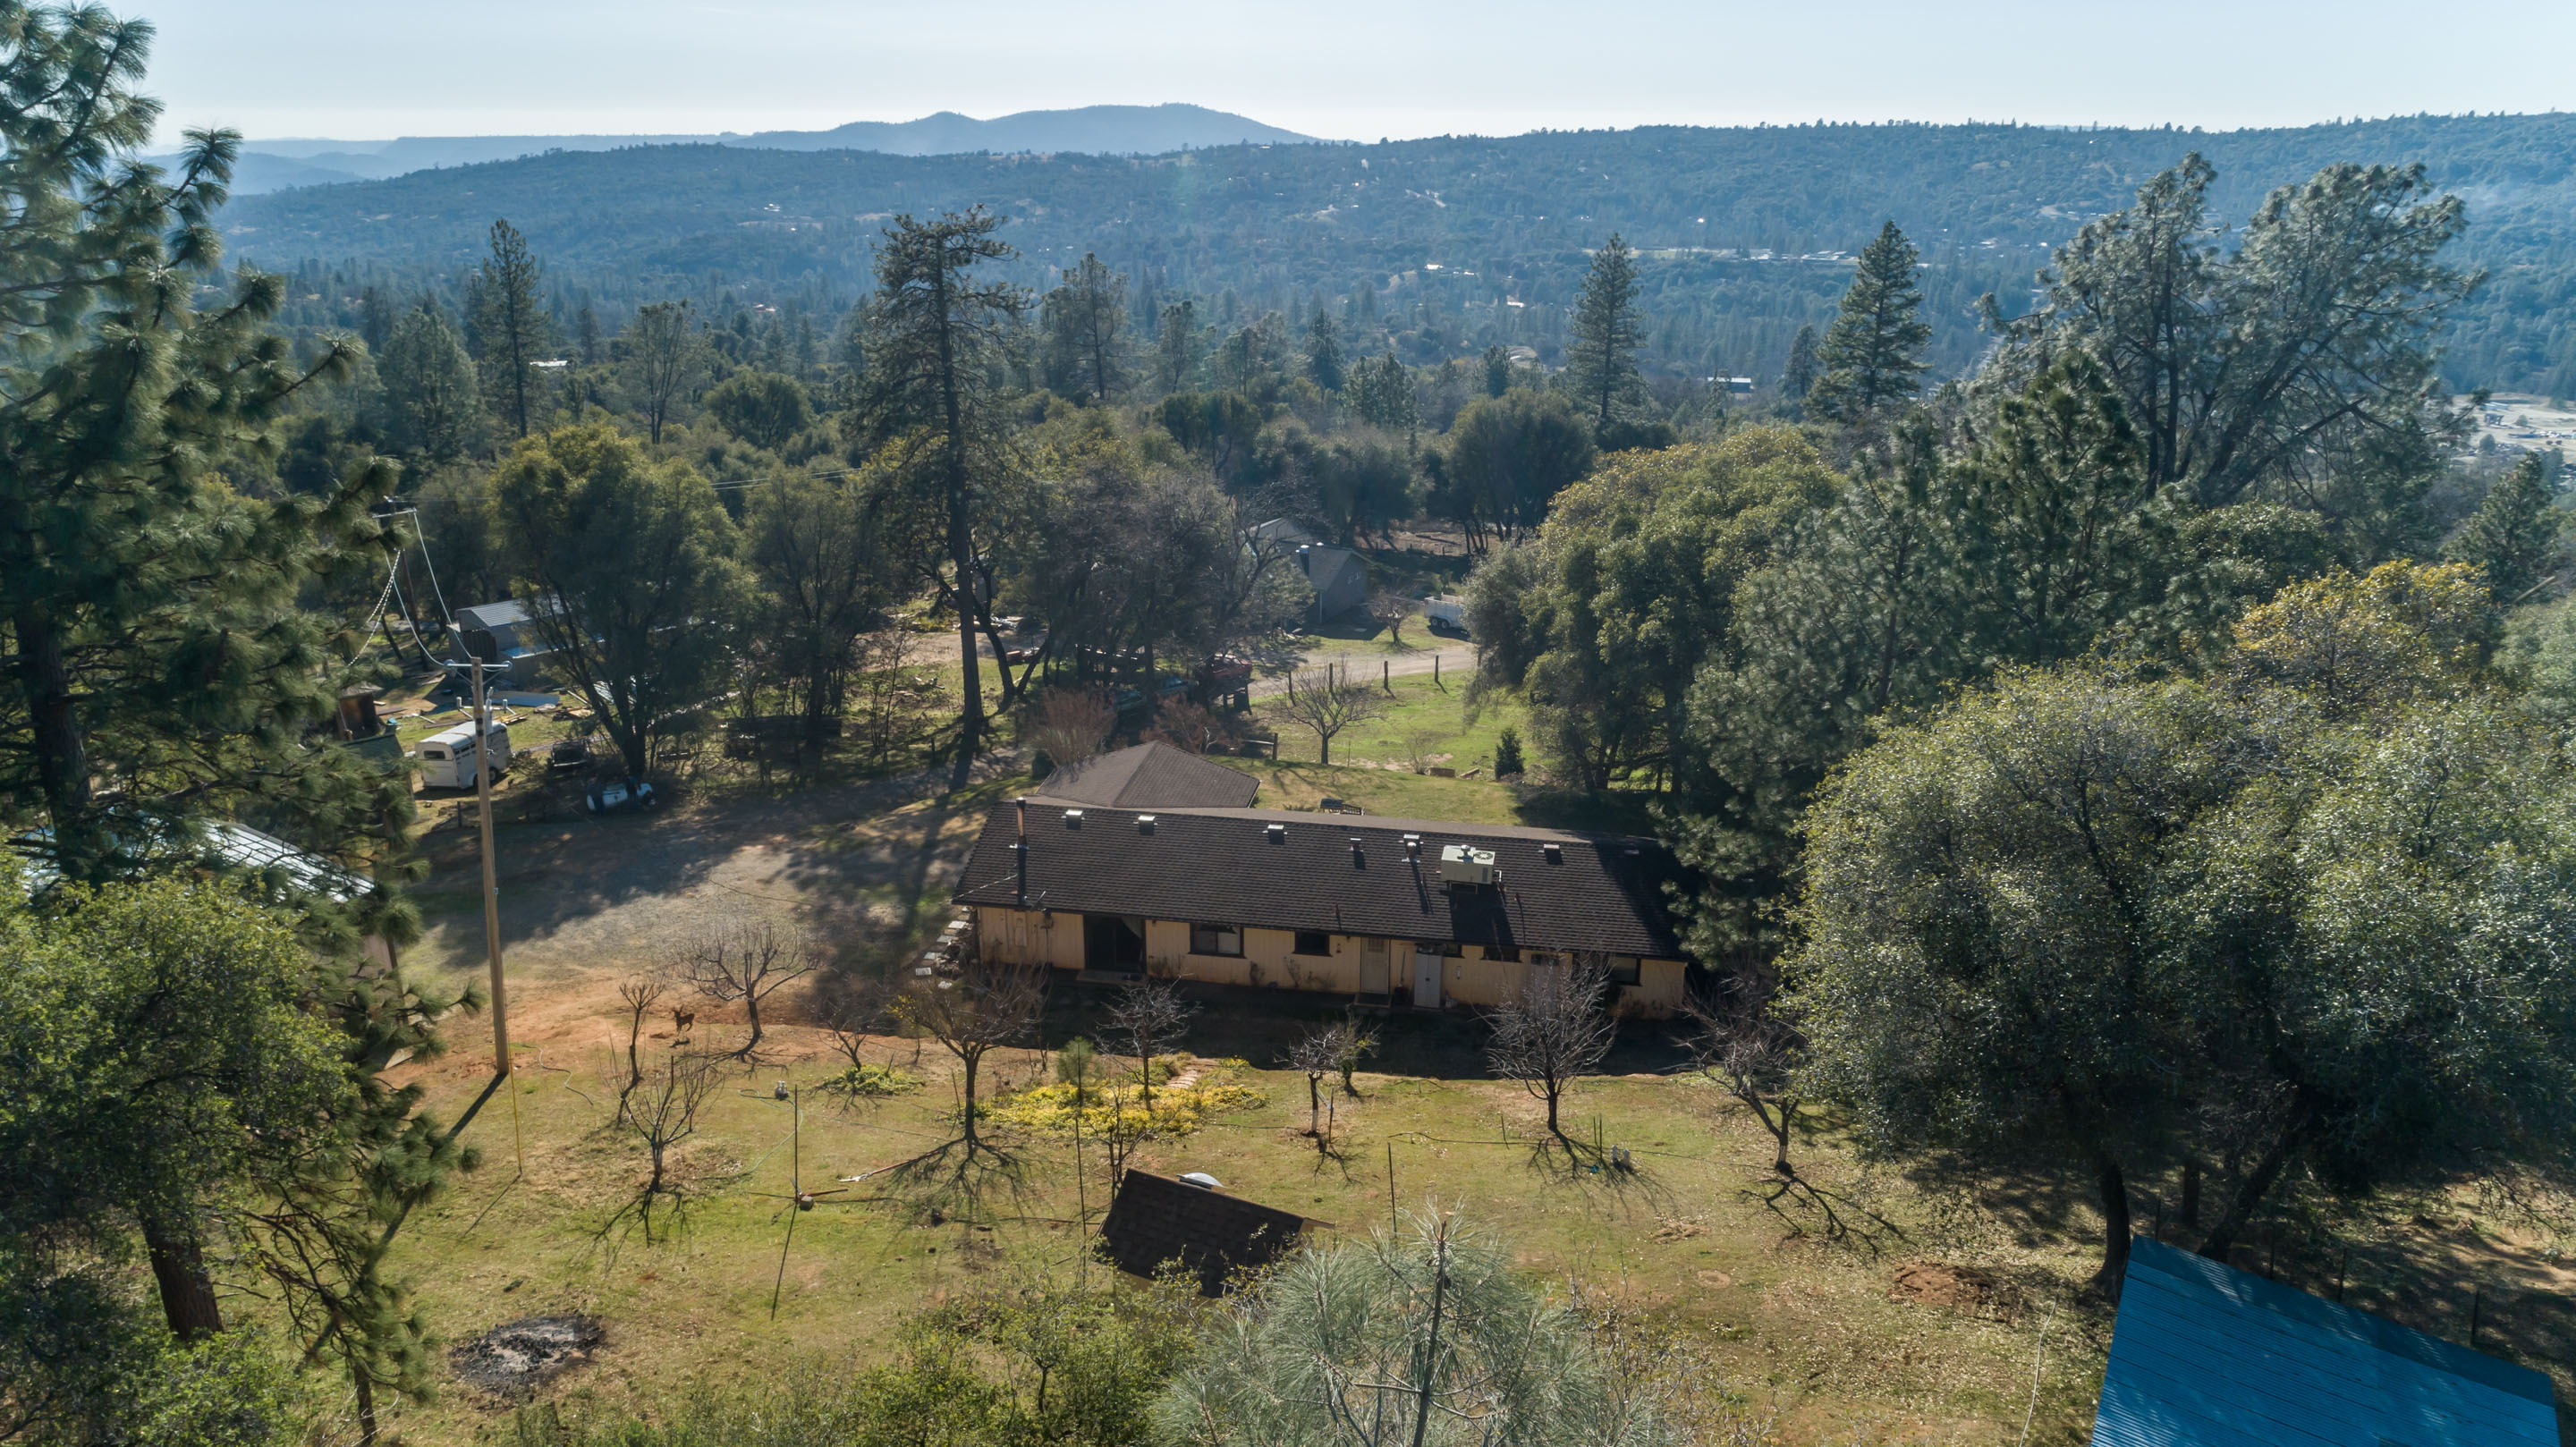 Home W/Shop 2 Acres for Sale Near Cascadel Woods North Fork, CA. 93643